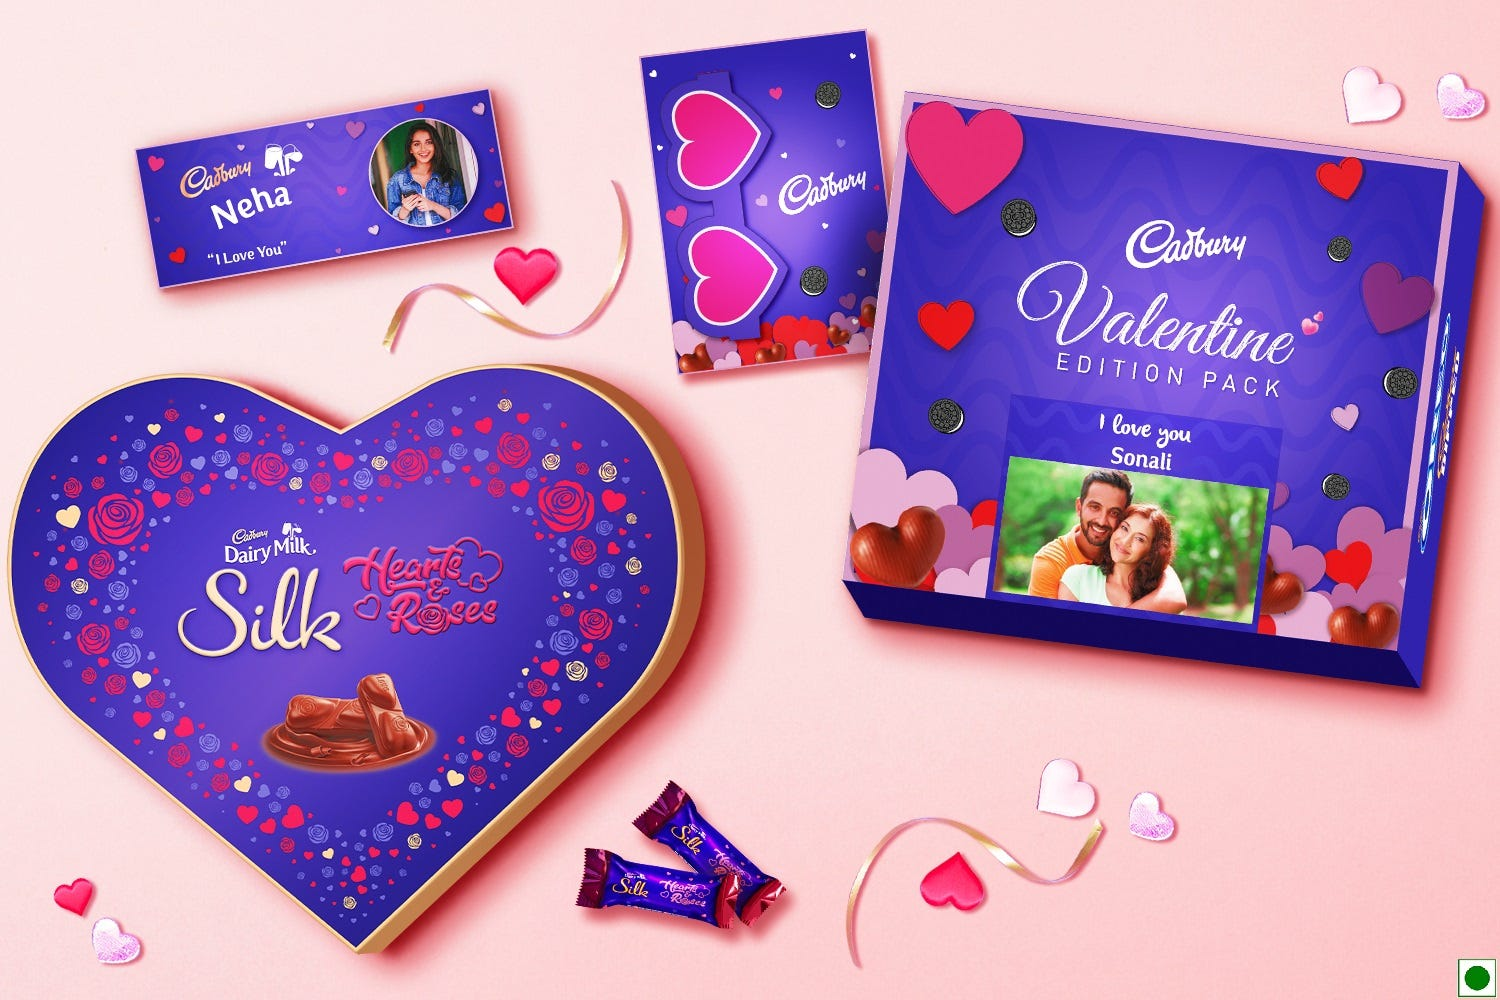 Chocolate Day gift ideas during Valentine's week from Cadbury Gifting